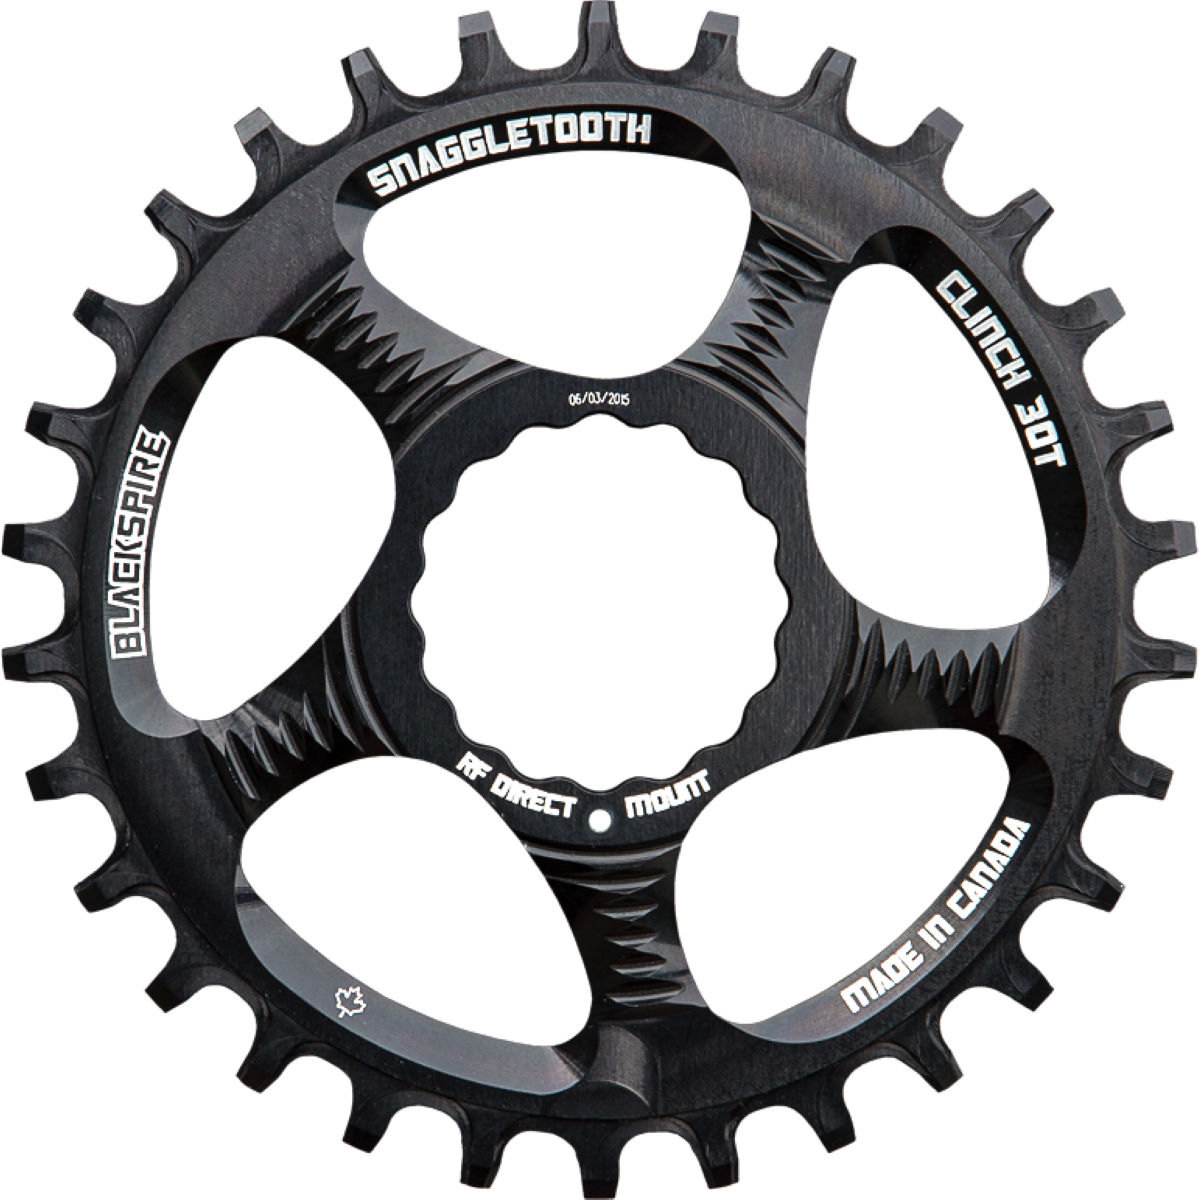 Blackspire Blackspire Snaggletooth Cinch Chainring   Chain Rings